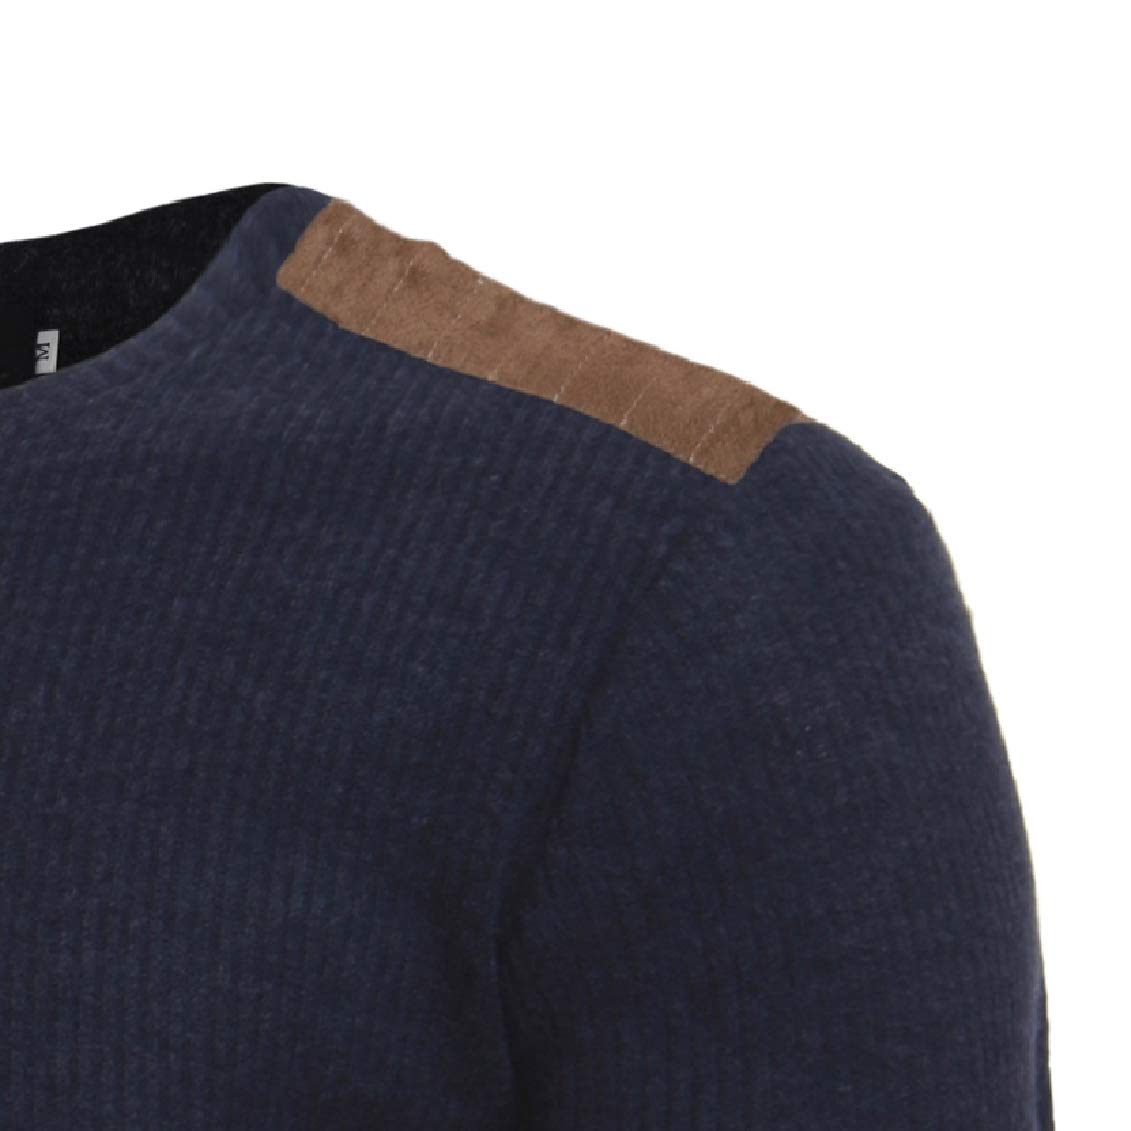 Coolred-Men Business Winter Stitch Plus Size Leisure Pullover Sweater